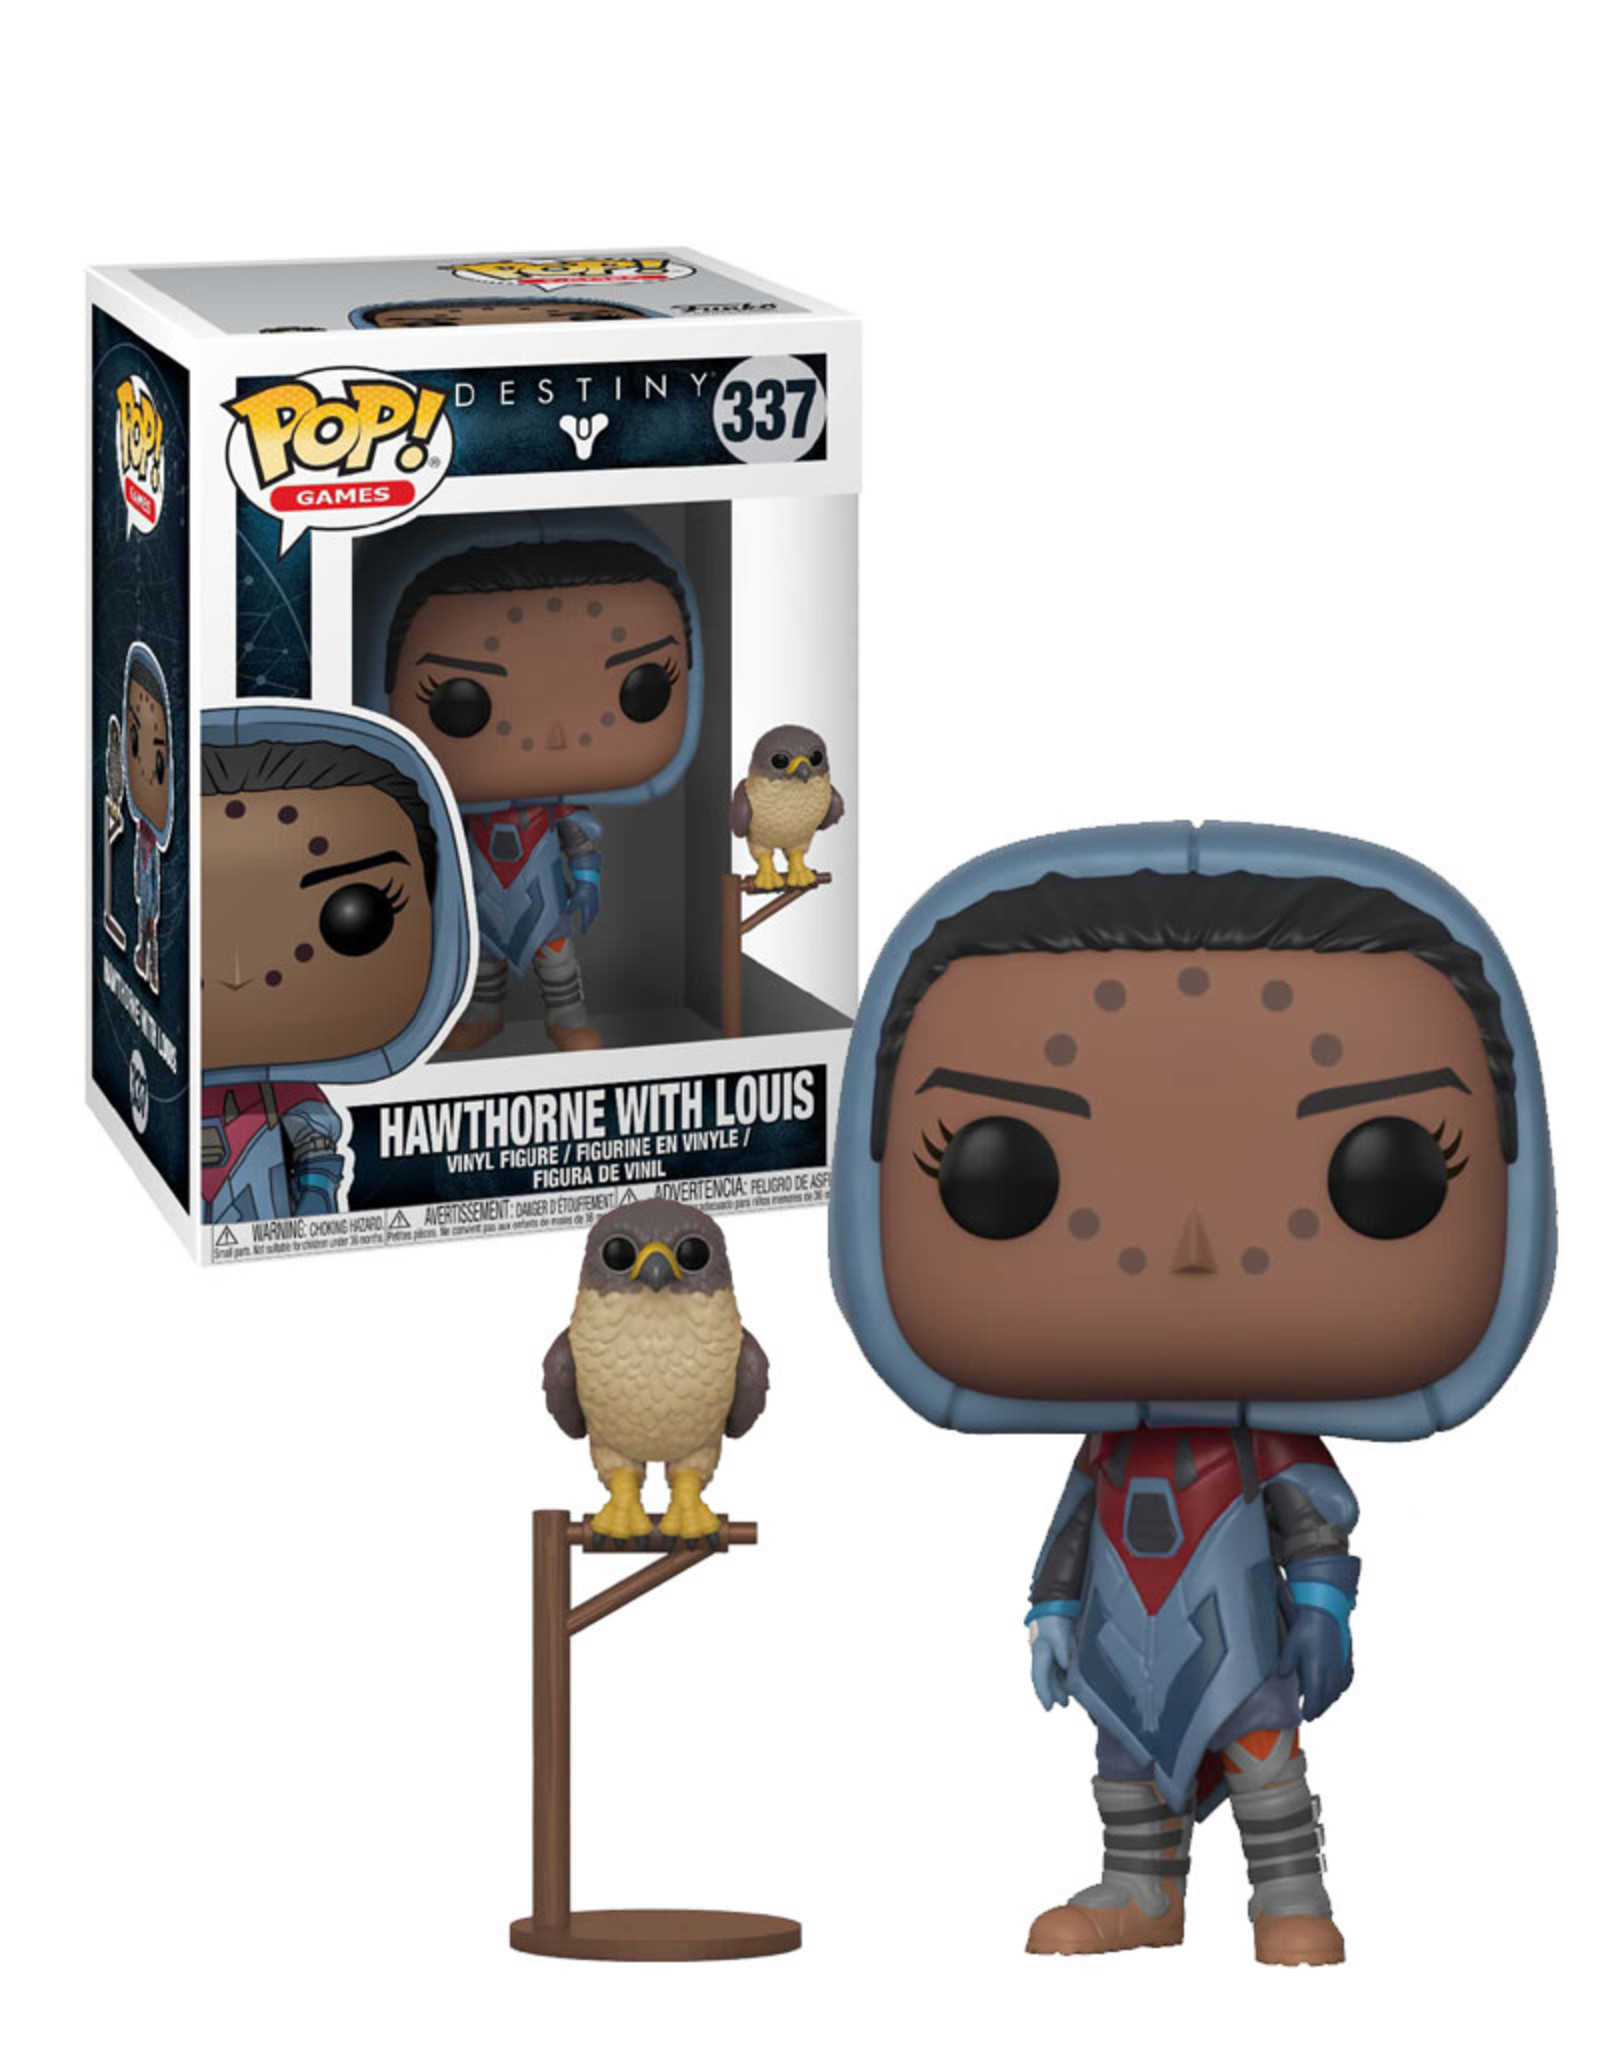 Destiny 337 ( Funko Pop ) Hawthorne with Louis